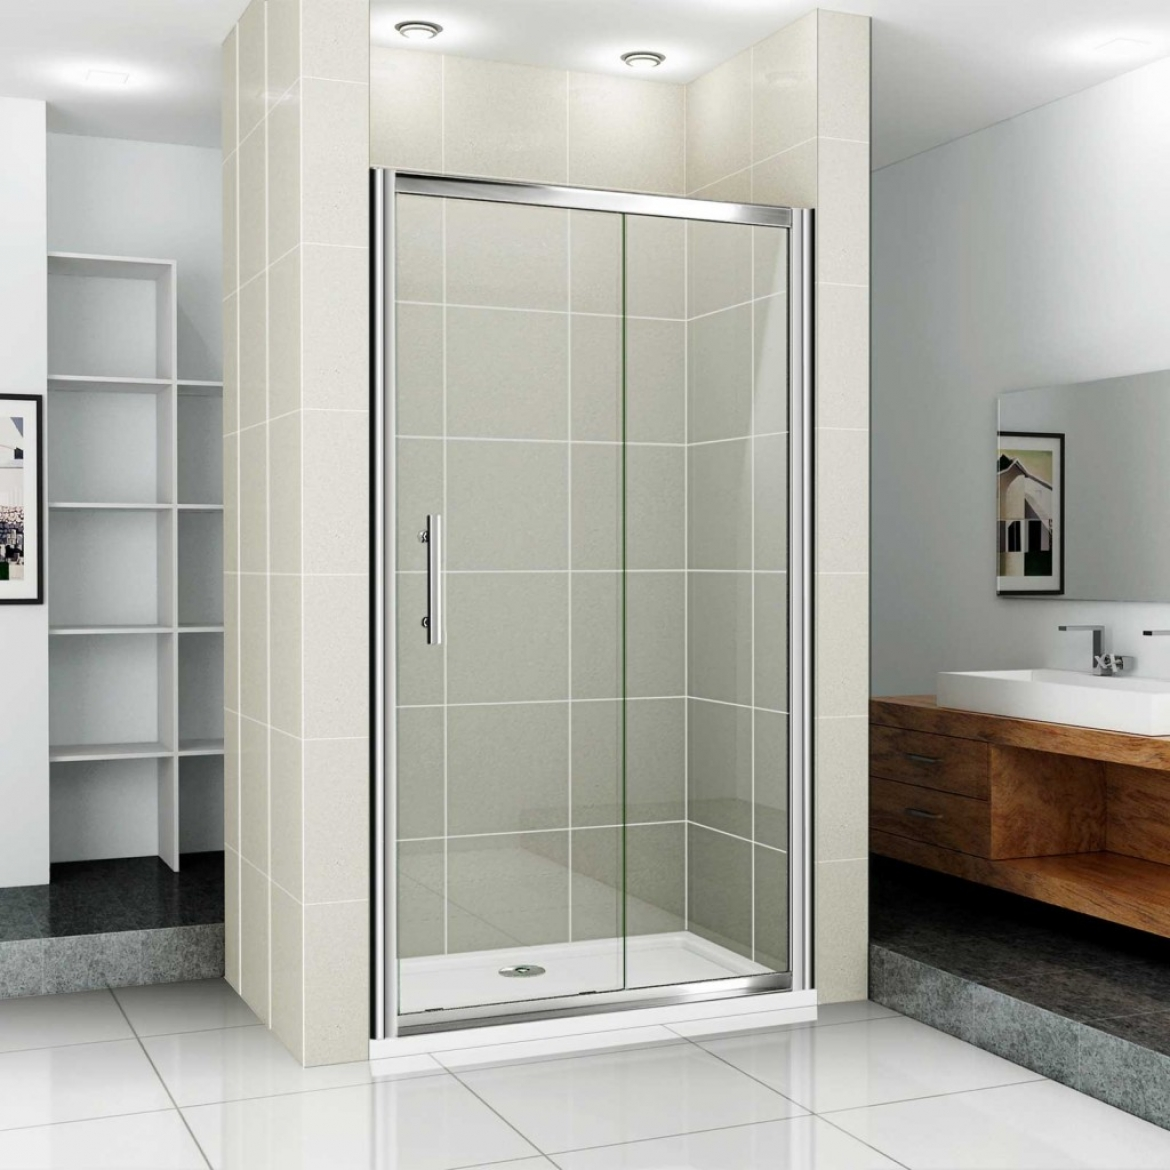 wall to wall sliding shower screen [1500 mm]